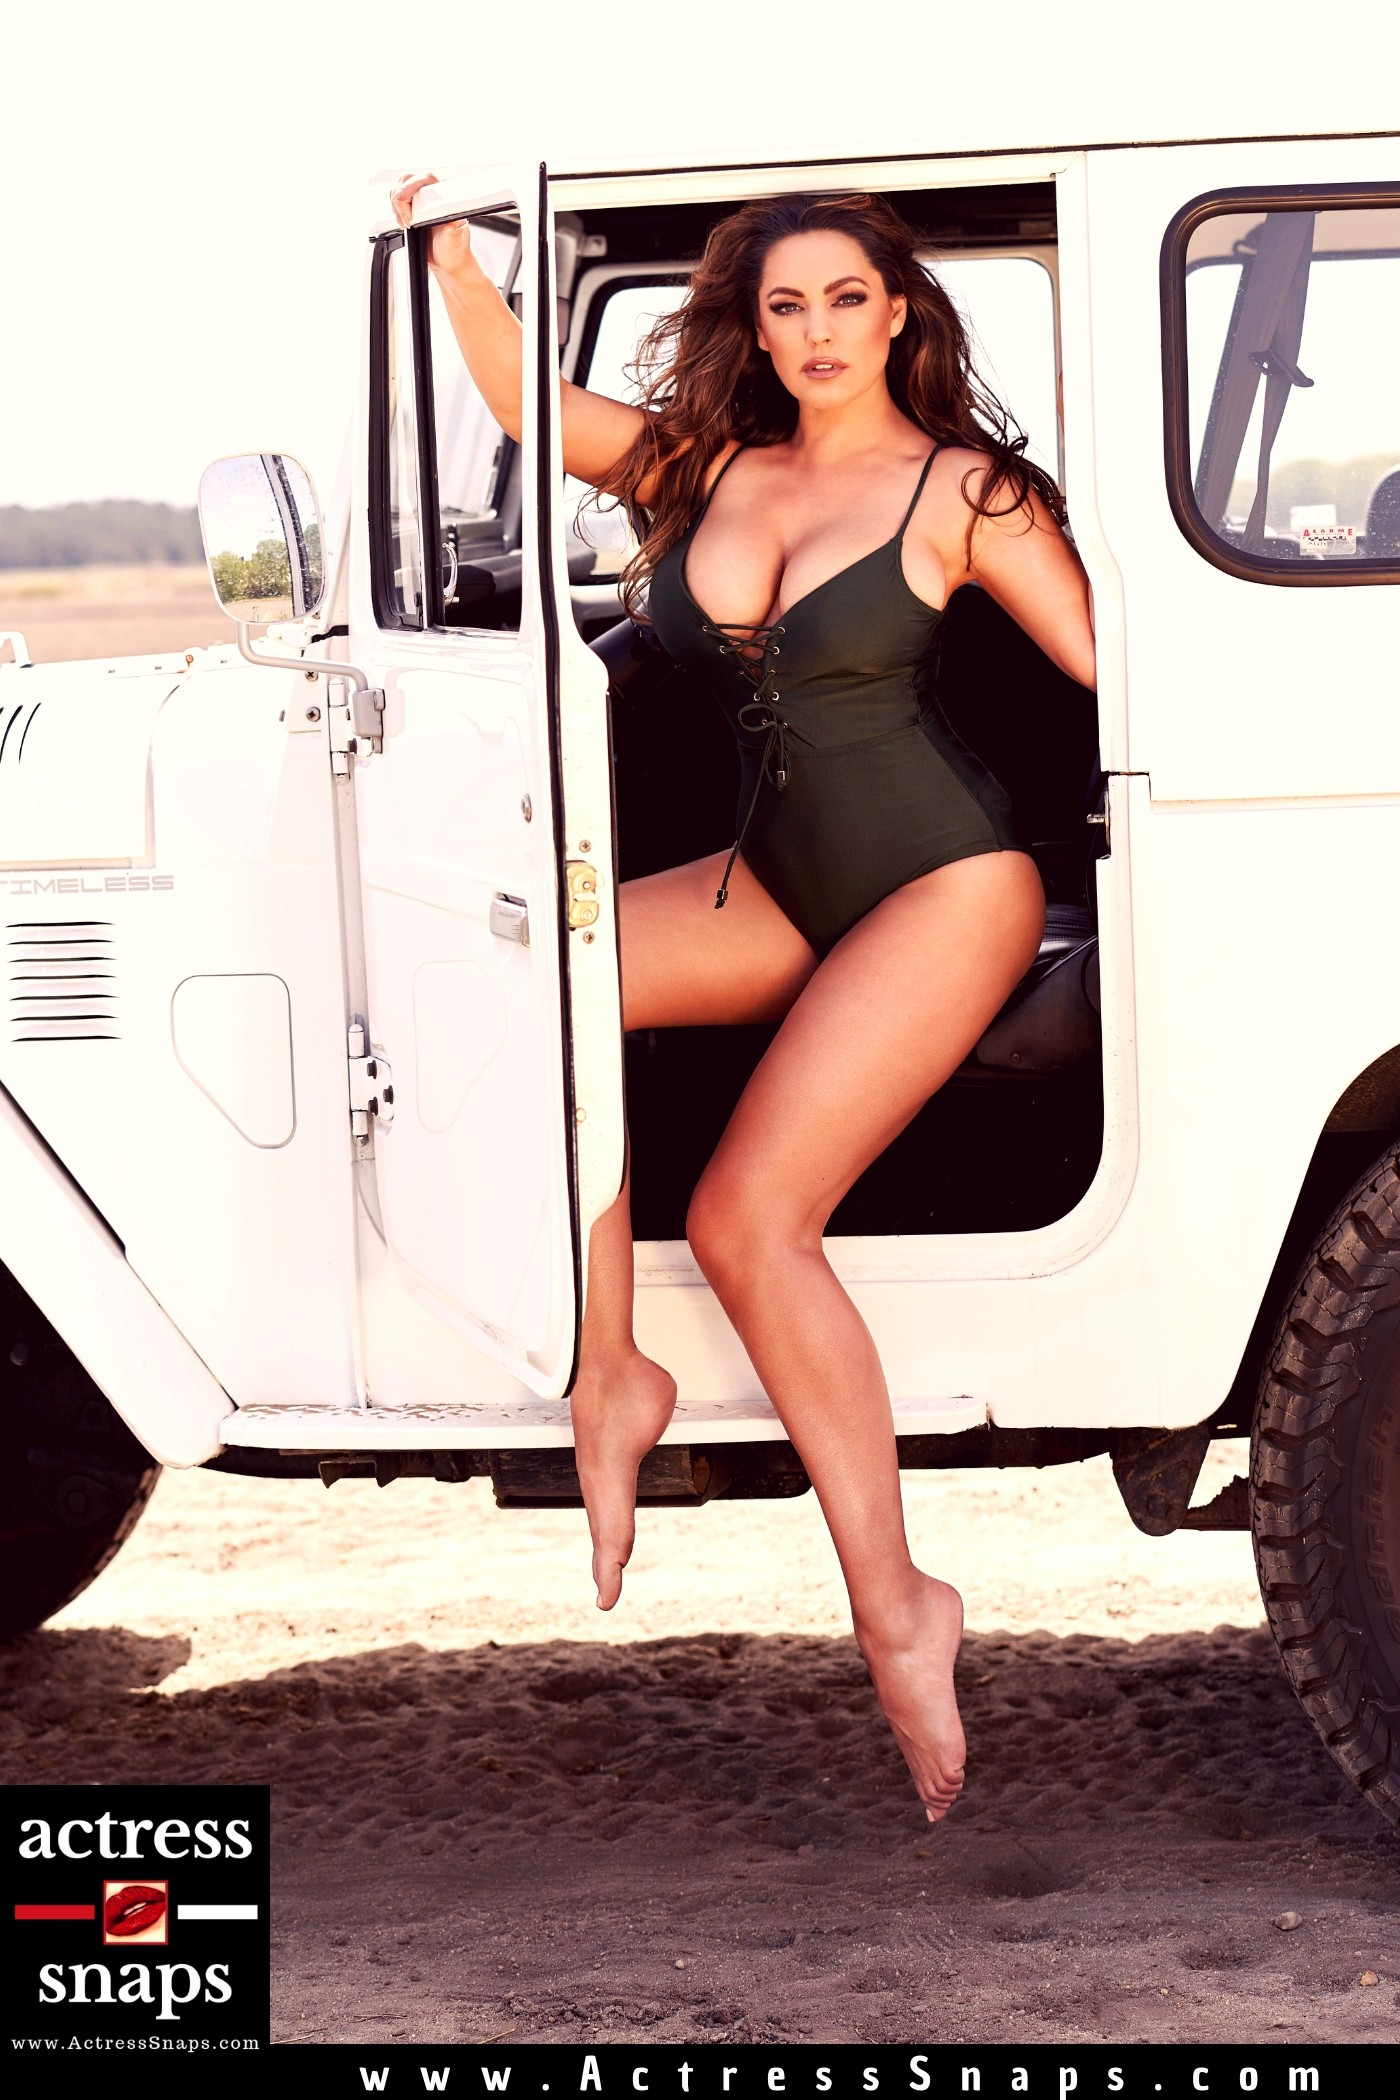 Kelly Brook - 2020 Calendar Photos - Sexy Actress Pictures | Hot Actress Pictures - ActressSnaps.com